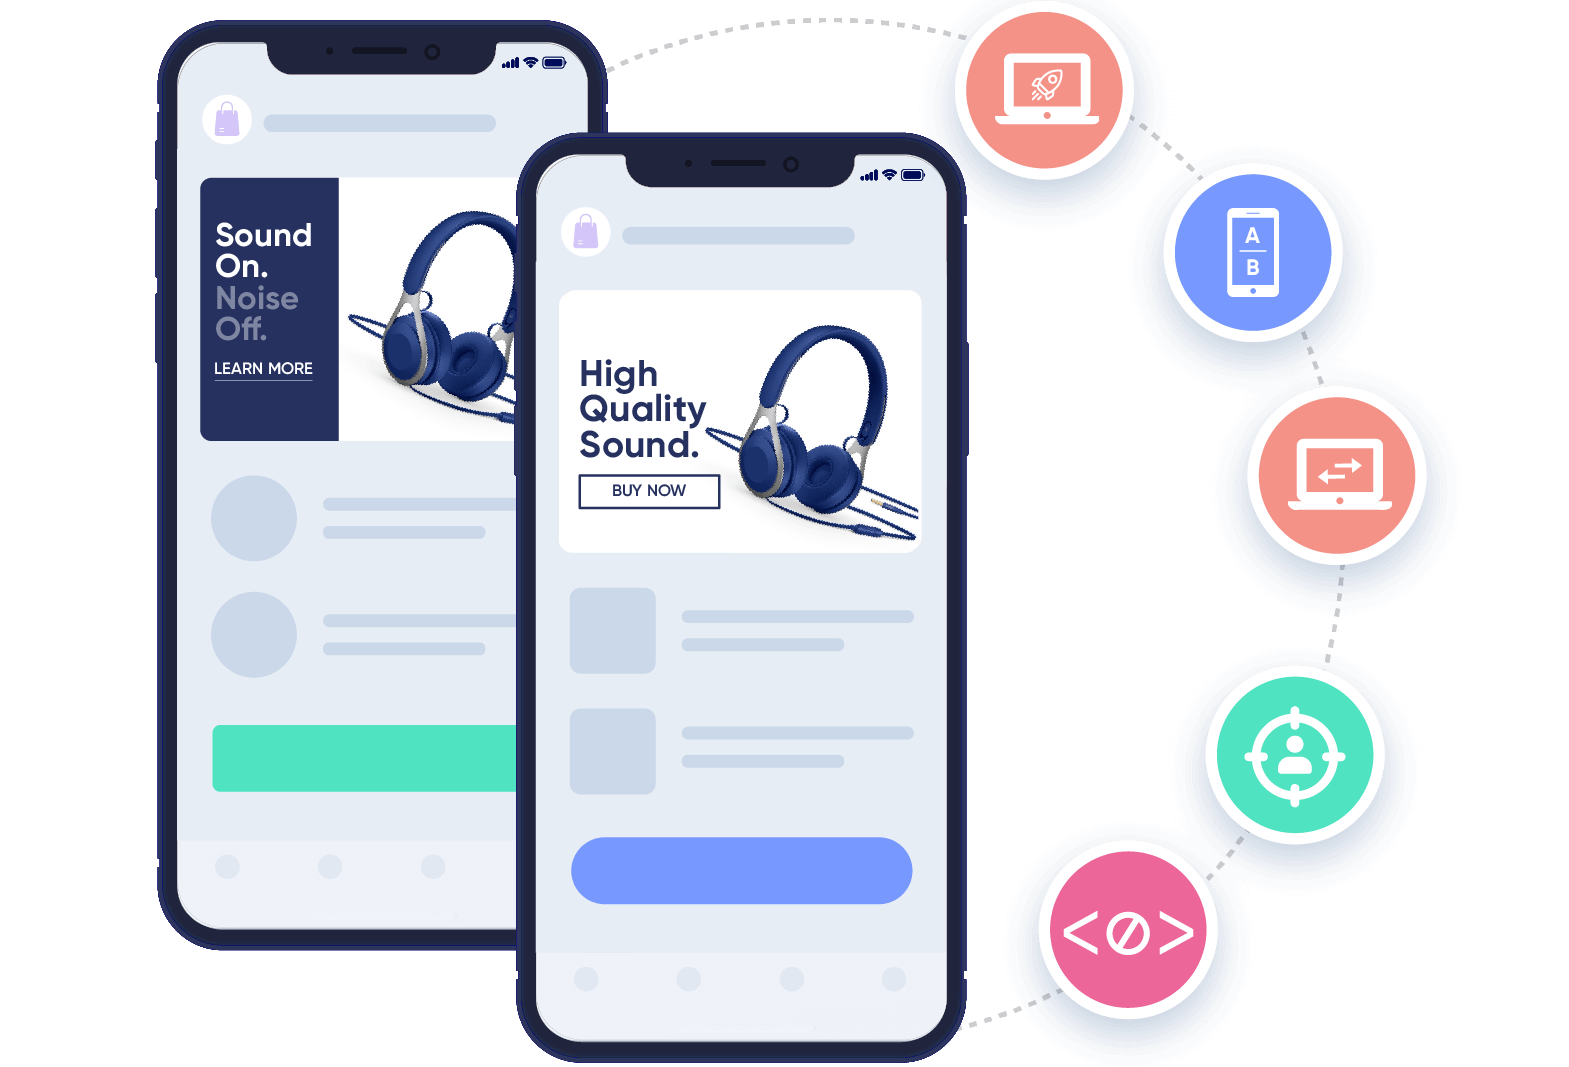 Product Experiences